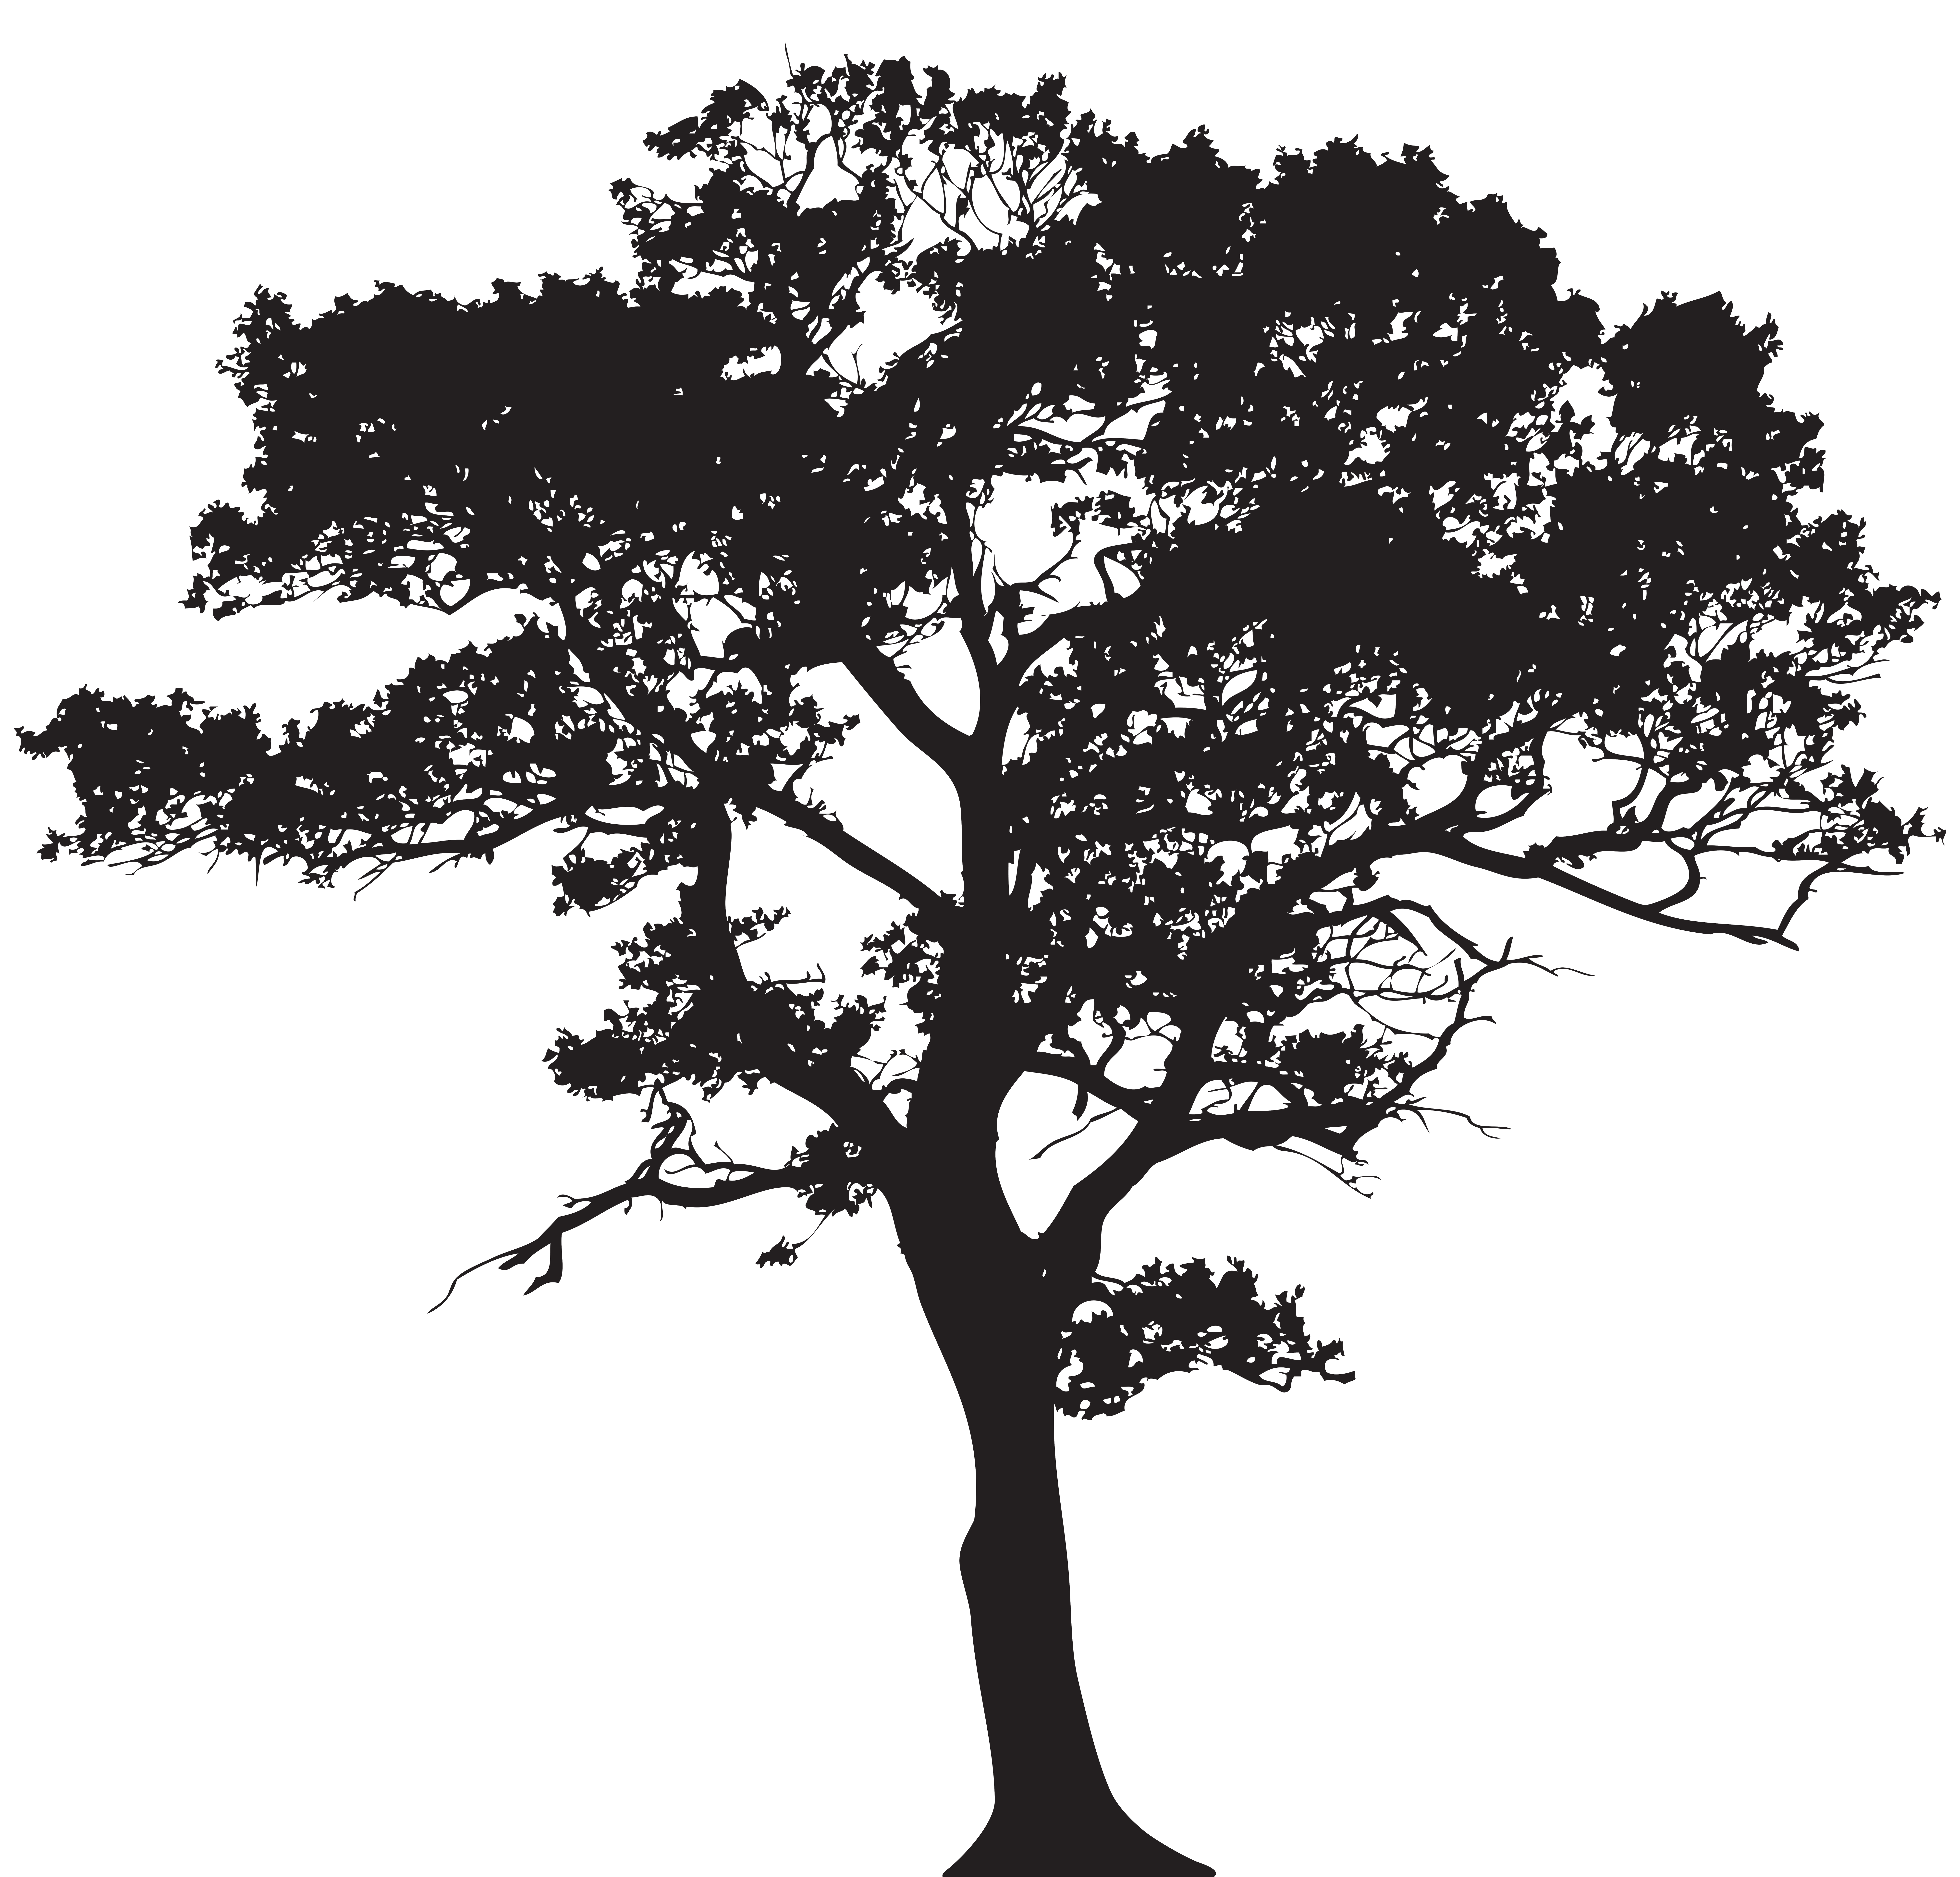 Shrubs silhouette png. Tree clip art image